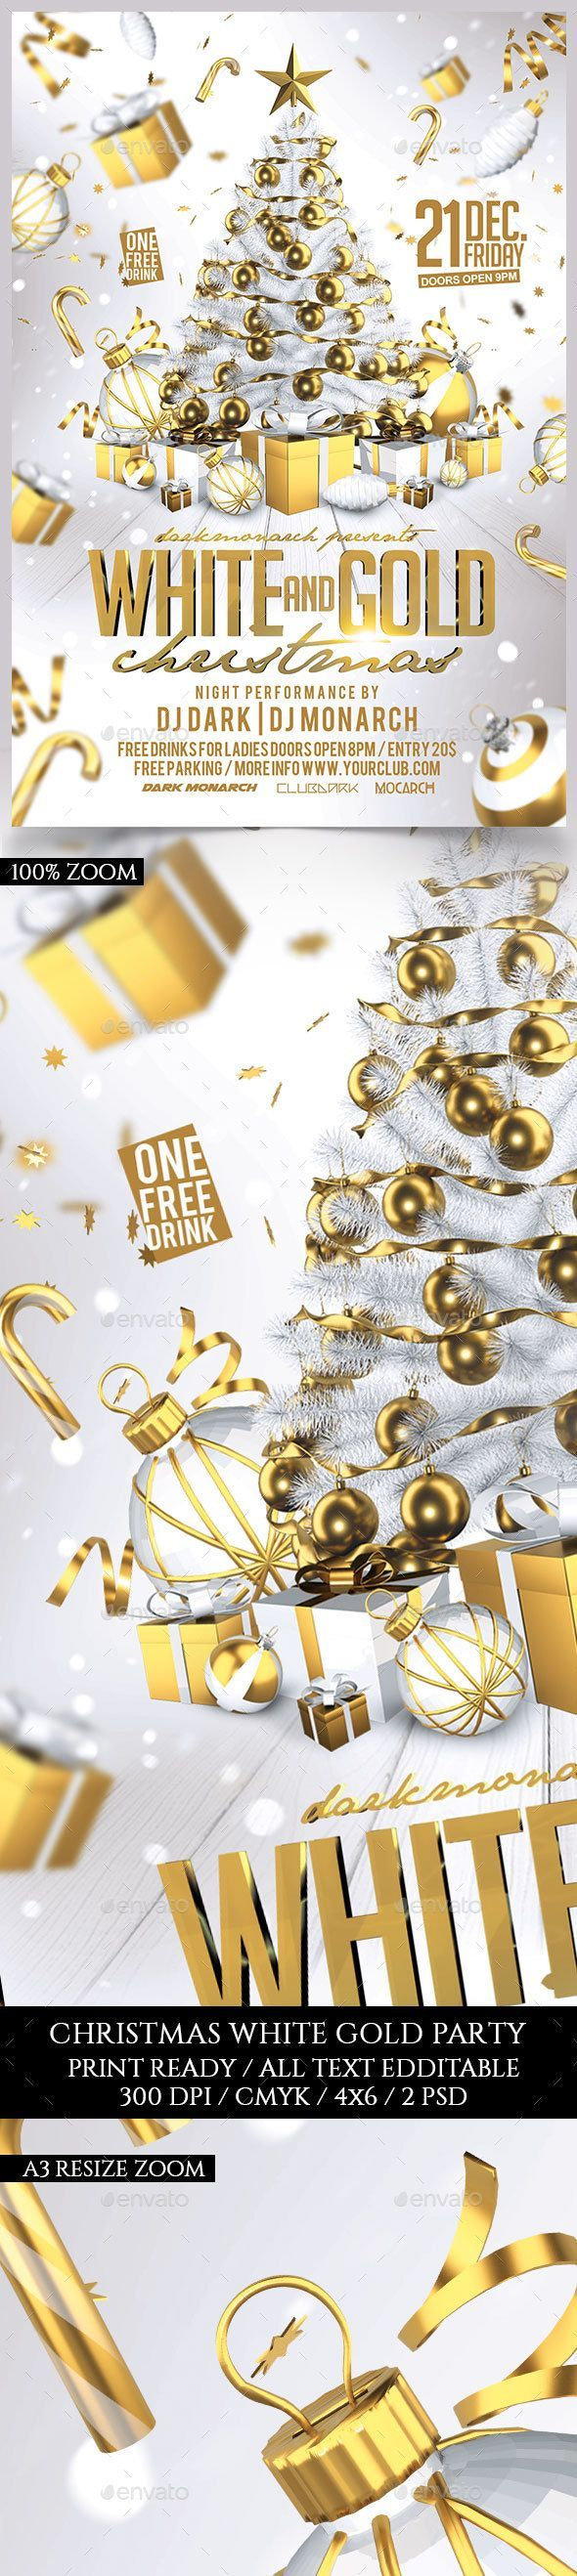 White and Gold Christmas Party — Photoshop PSD #elegant #print • Available here → https://graphicriver.net/item/white-and-gold-christmas-party/18734157?ref=pxcr